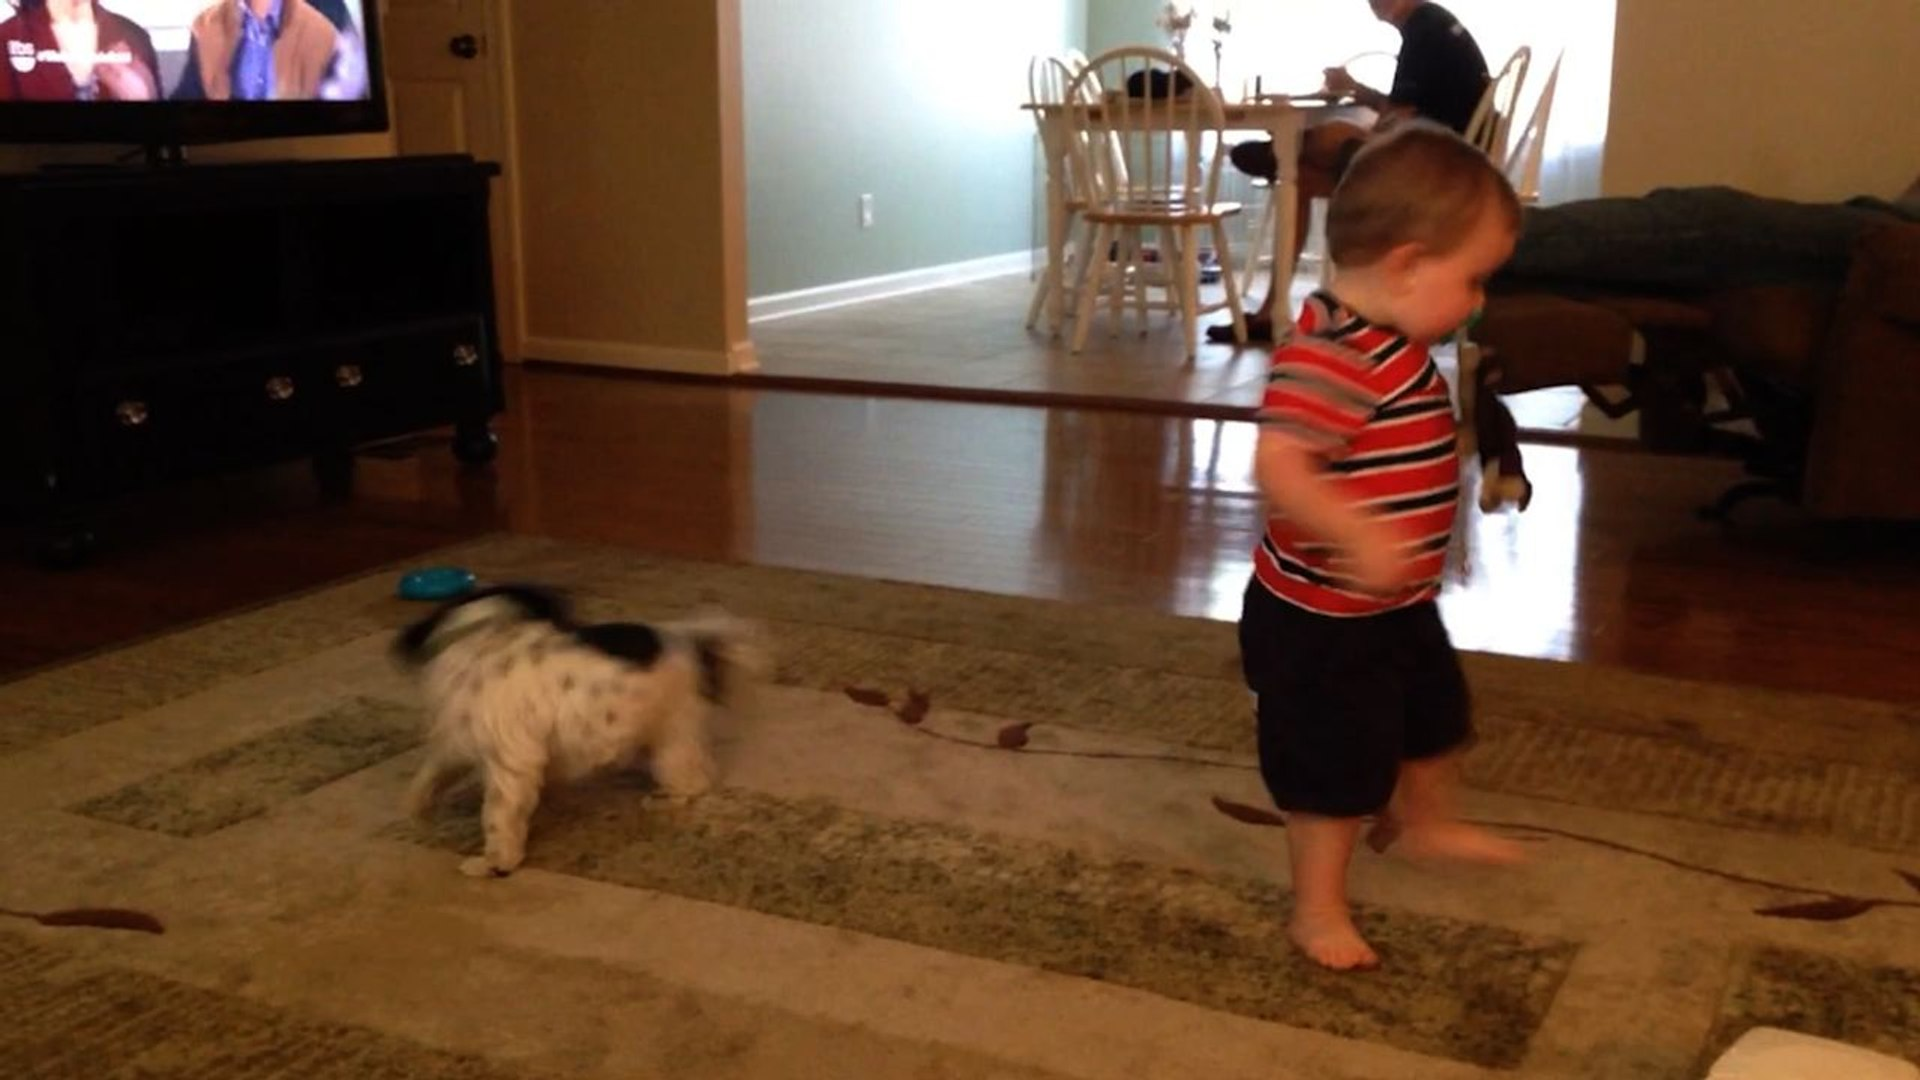 Toddler And Dog Both Chase Their Tails